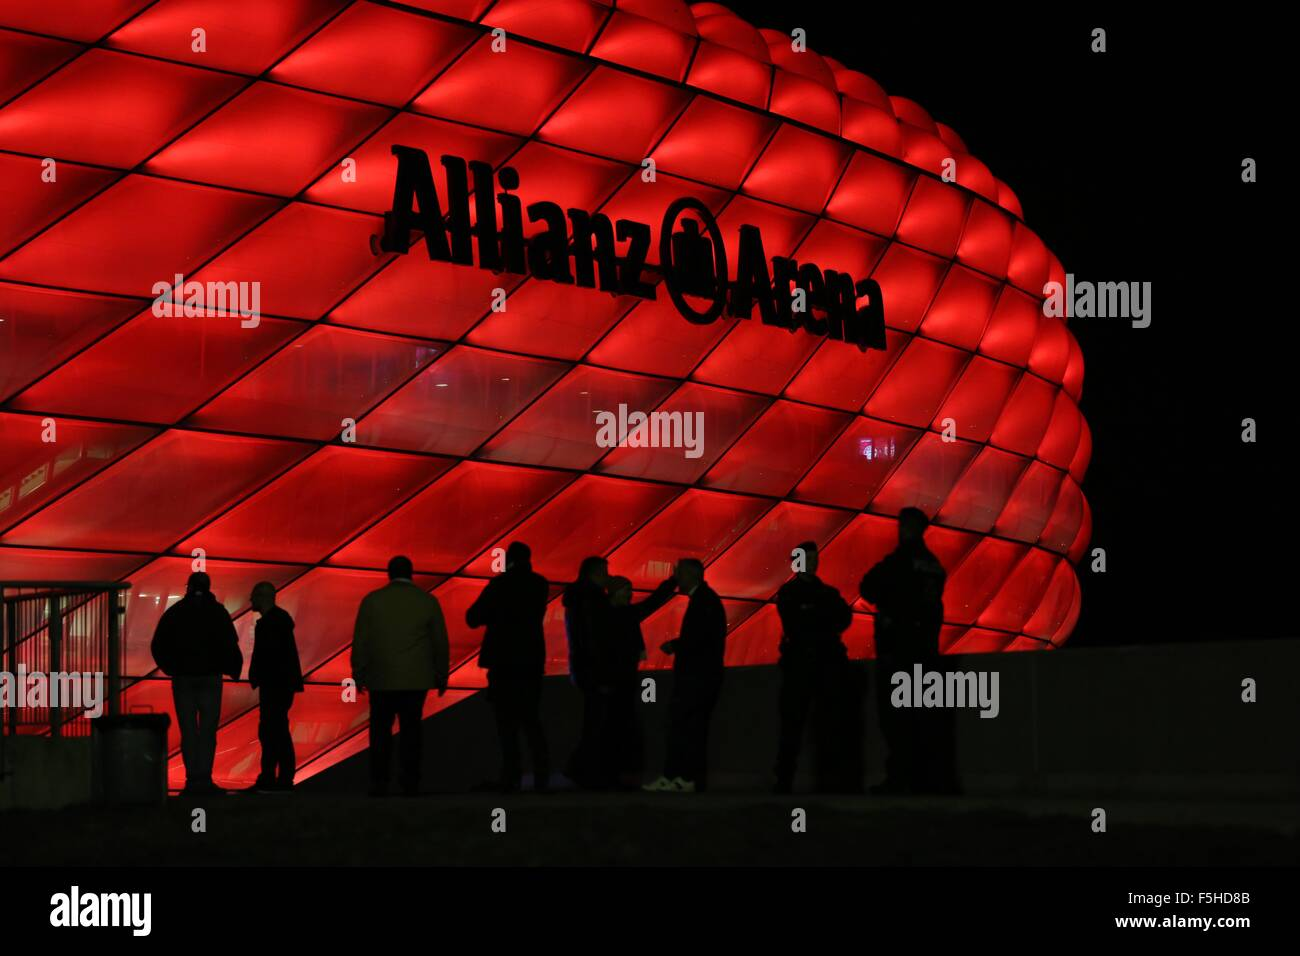 Monaco di Baviera, Germania. 4 Novembre, 2015. Tifosi arrivano all'Allianz Arena per la UEFA Champions League Immagini Stock